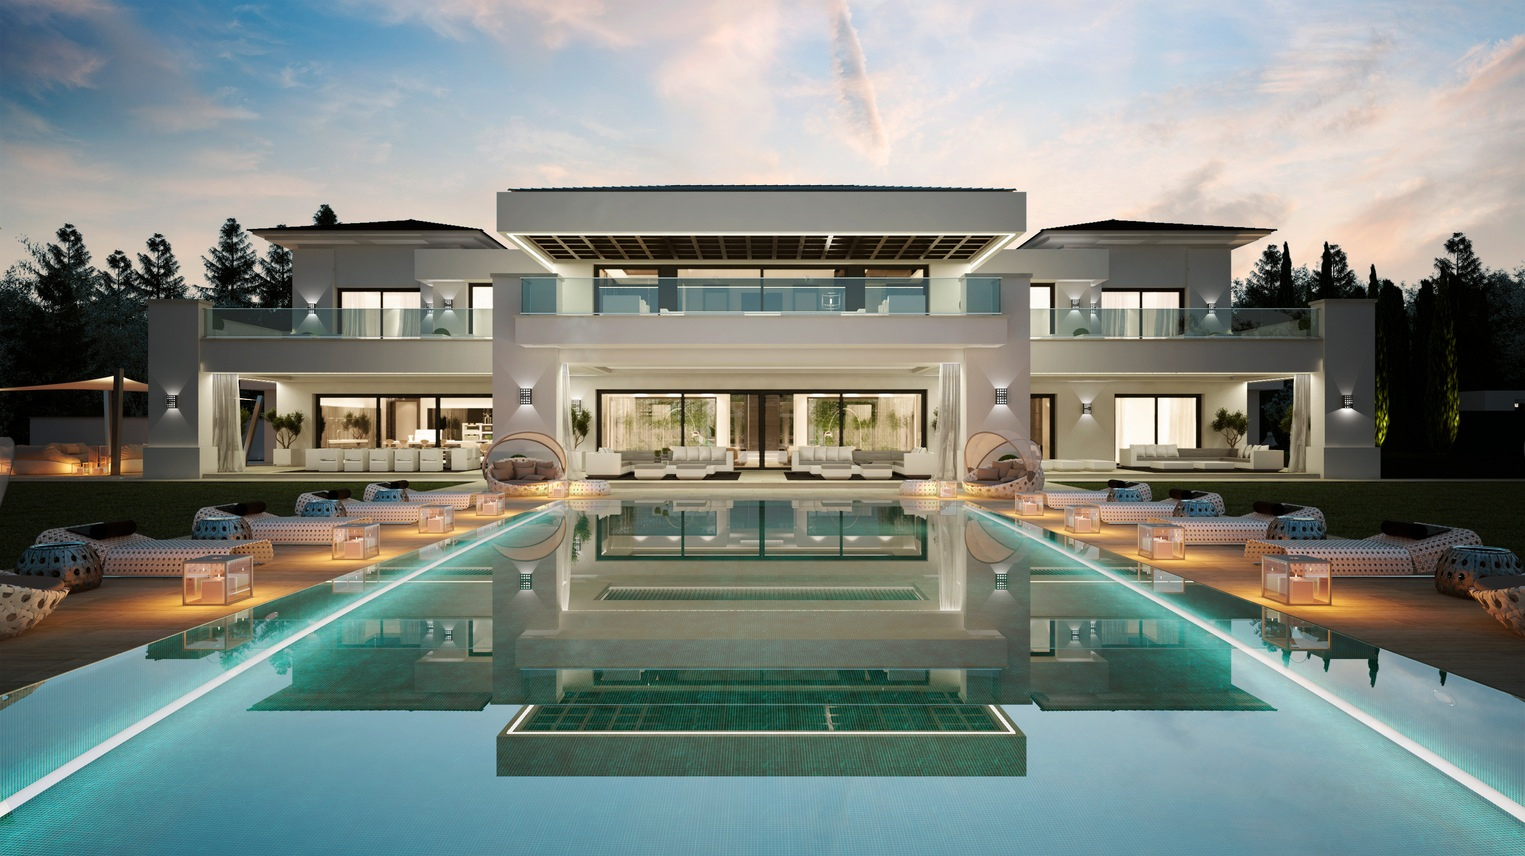 Luxurious 9 bedroom spanish home with indoor outdoor pools for Villa de luxe moderne interieur